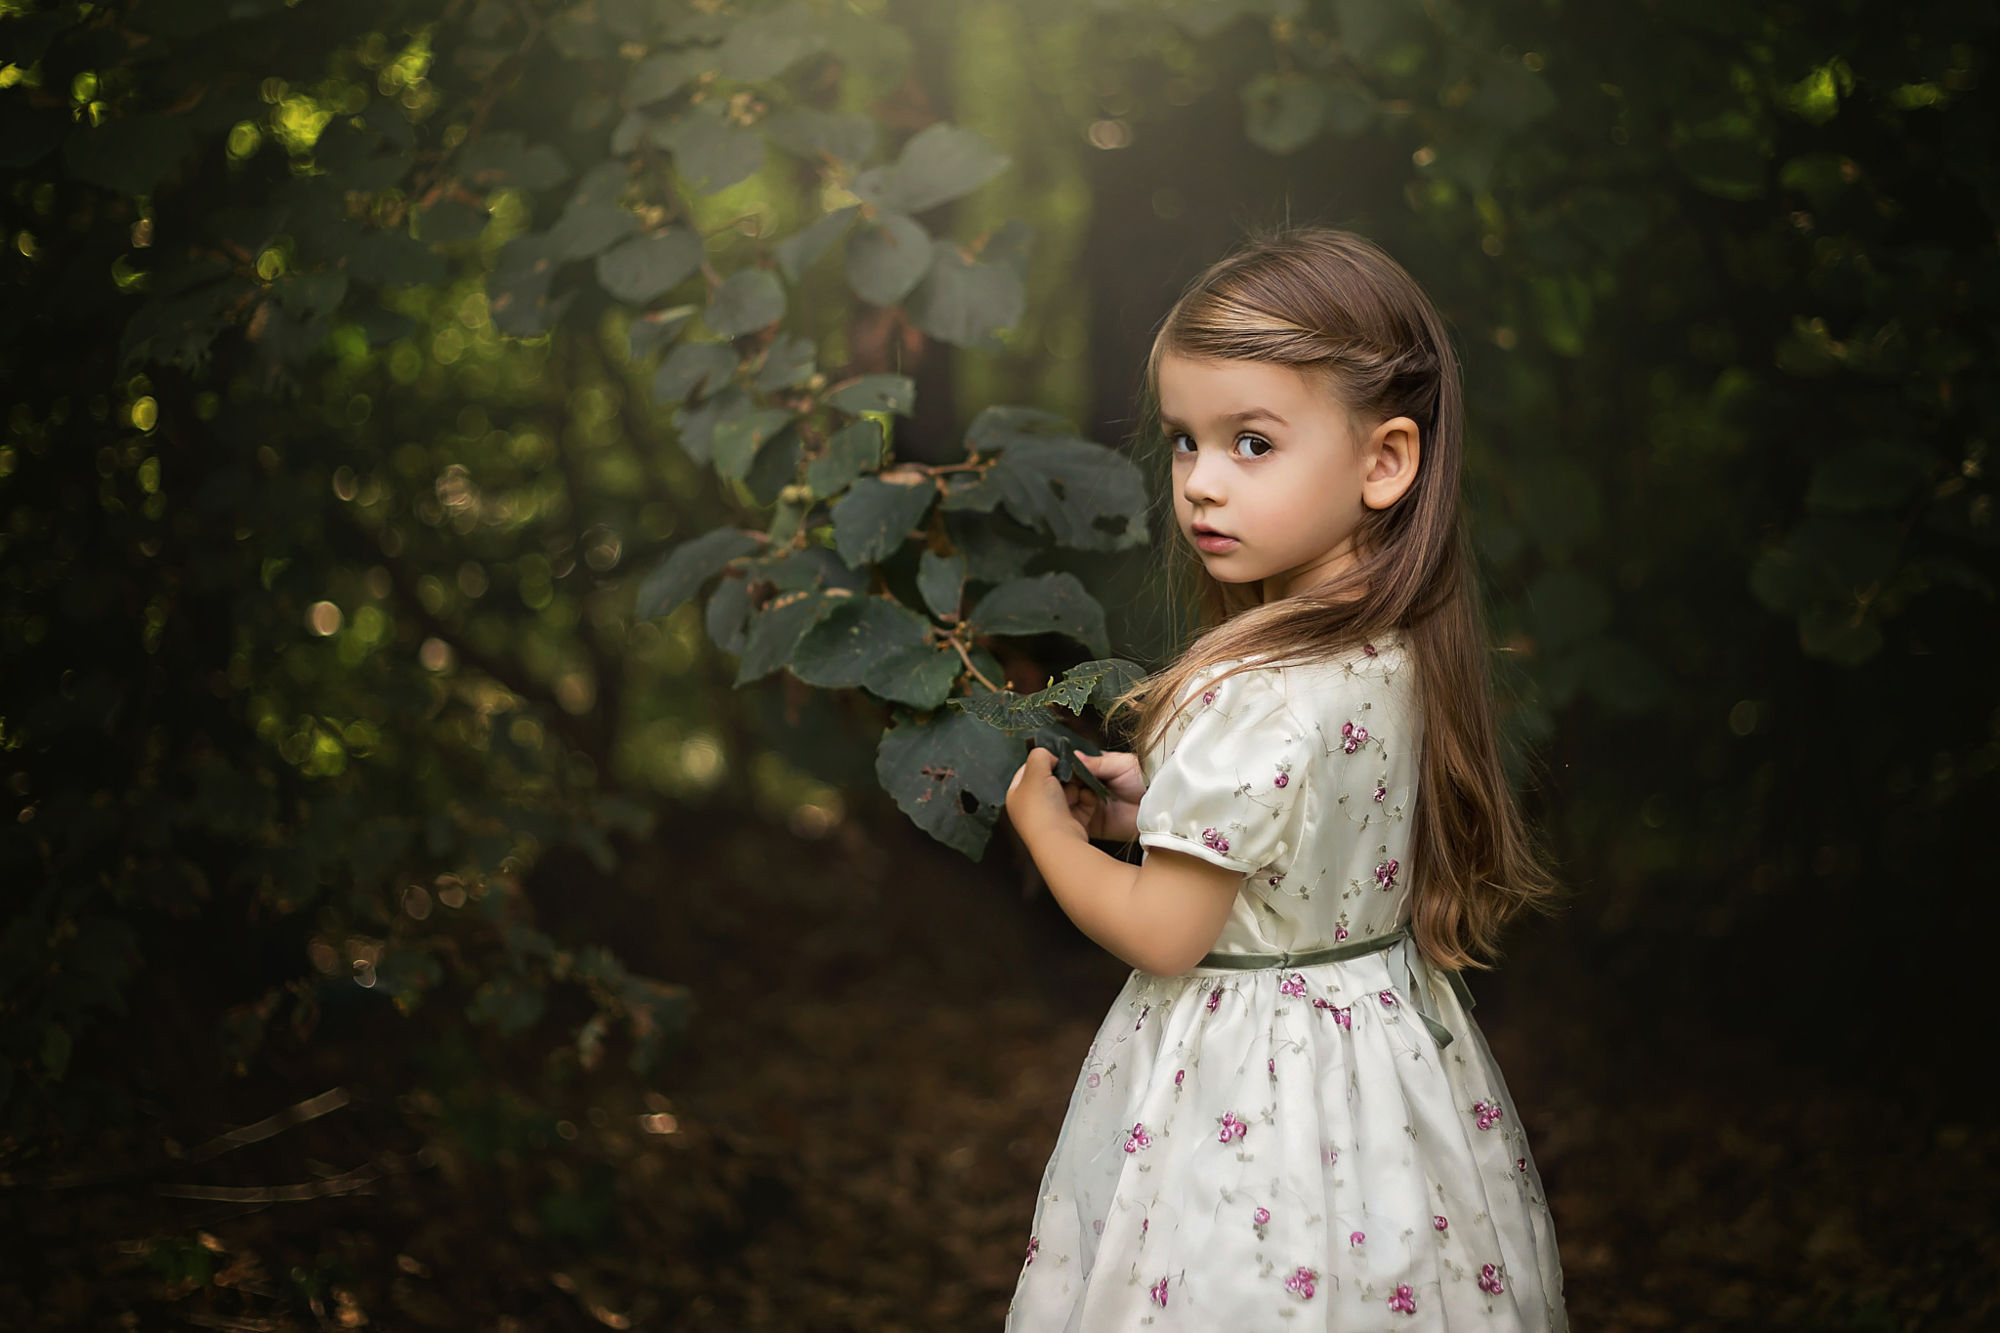 Little girl in the woods hd wallpaper background image - Cute little girl pic hd ...